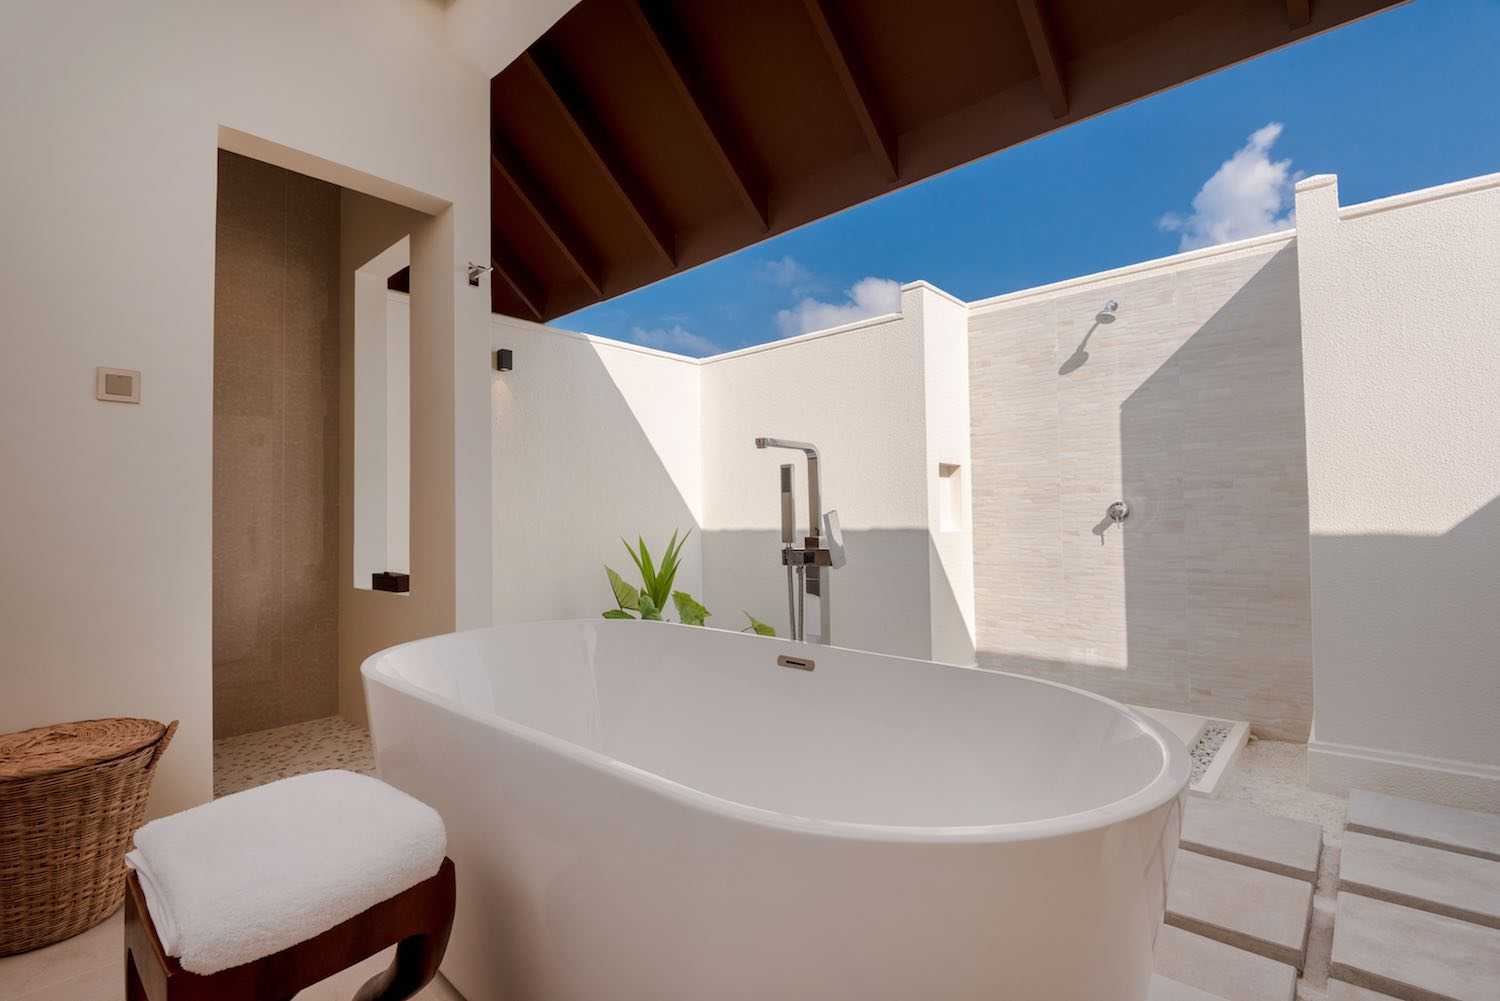 maldives-varu-by-atmosphere-beach-villa-with-pool-bathroom-holiday-honeymoon-vacation-invite-to-paradise.jpg